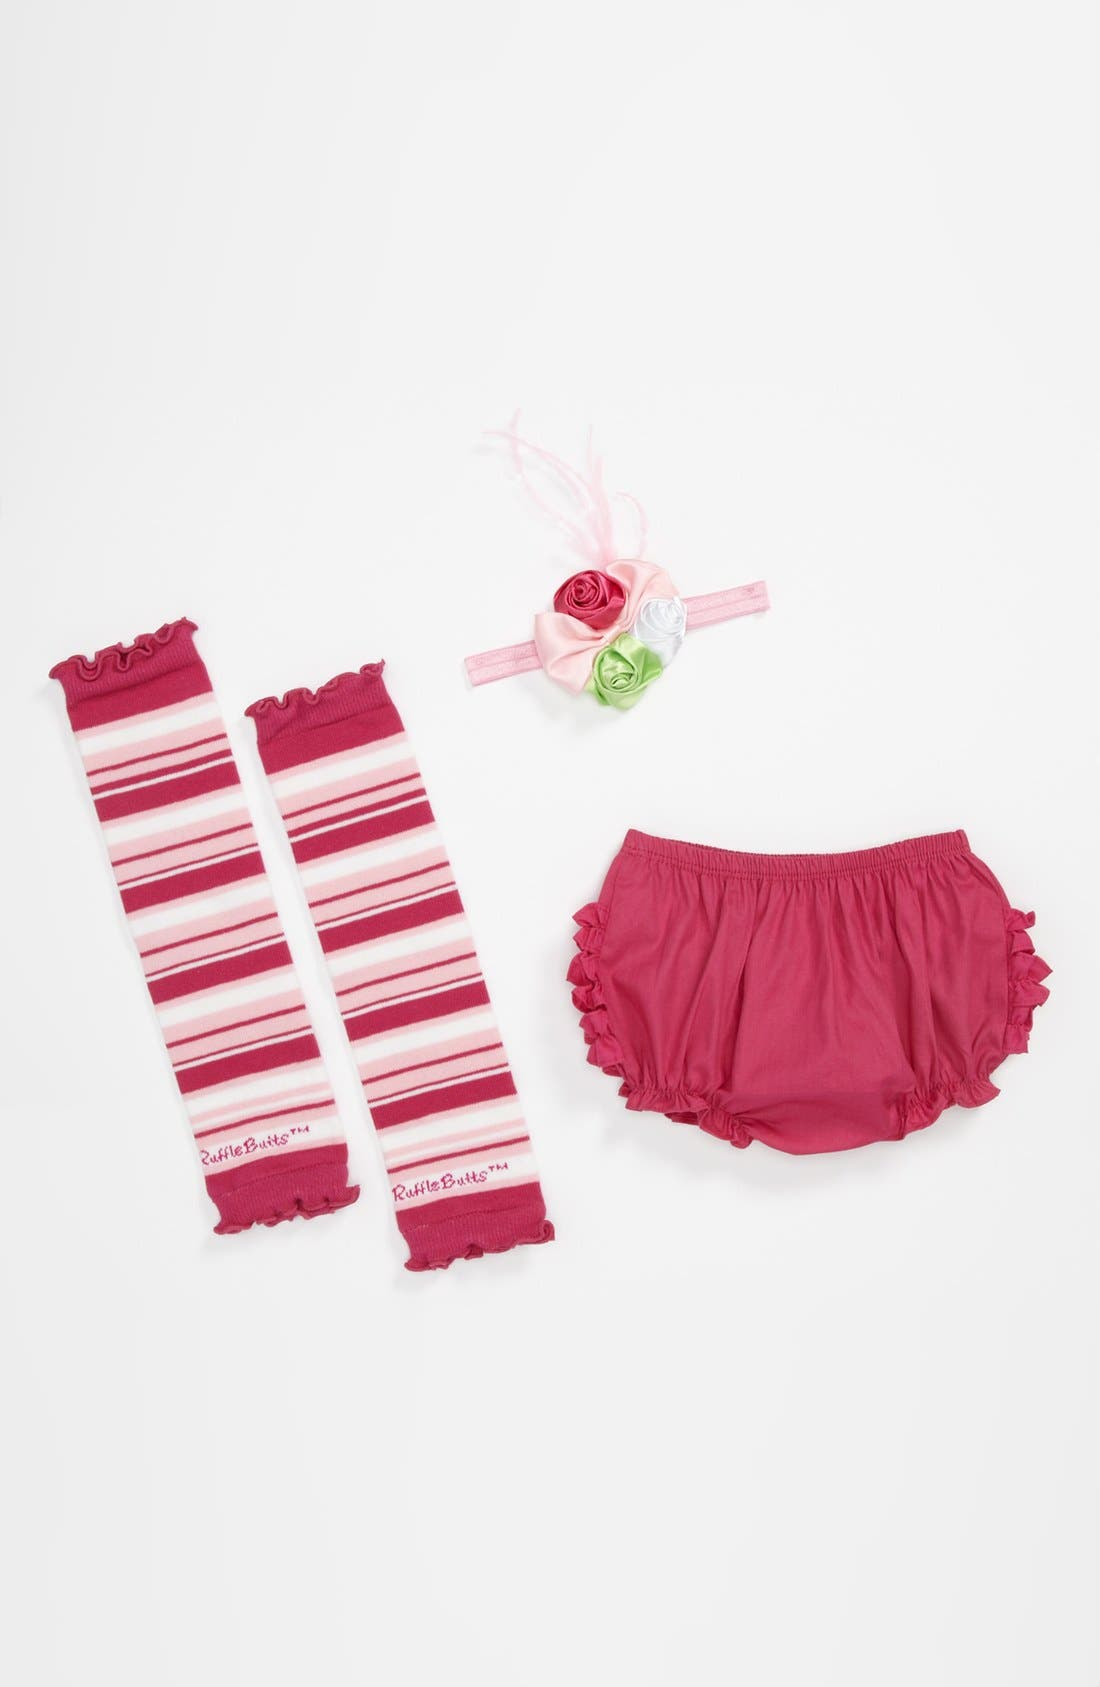 Main Image - RuffleButts Headband, Leg Warmers & Bloomers (Baby Girls)